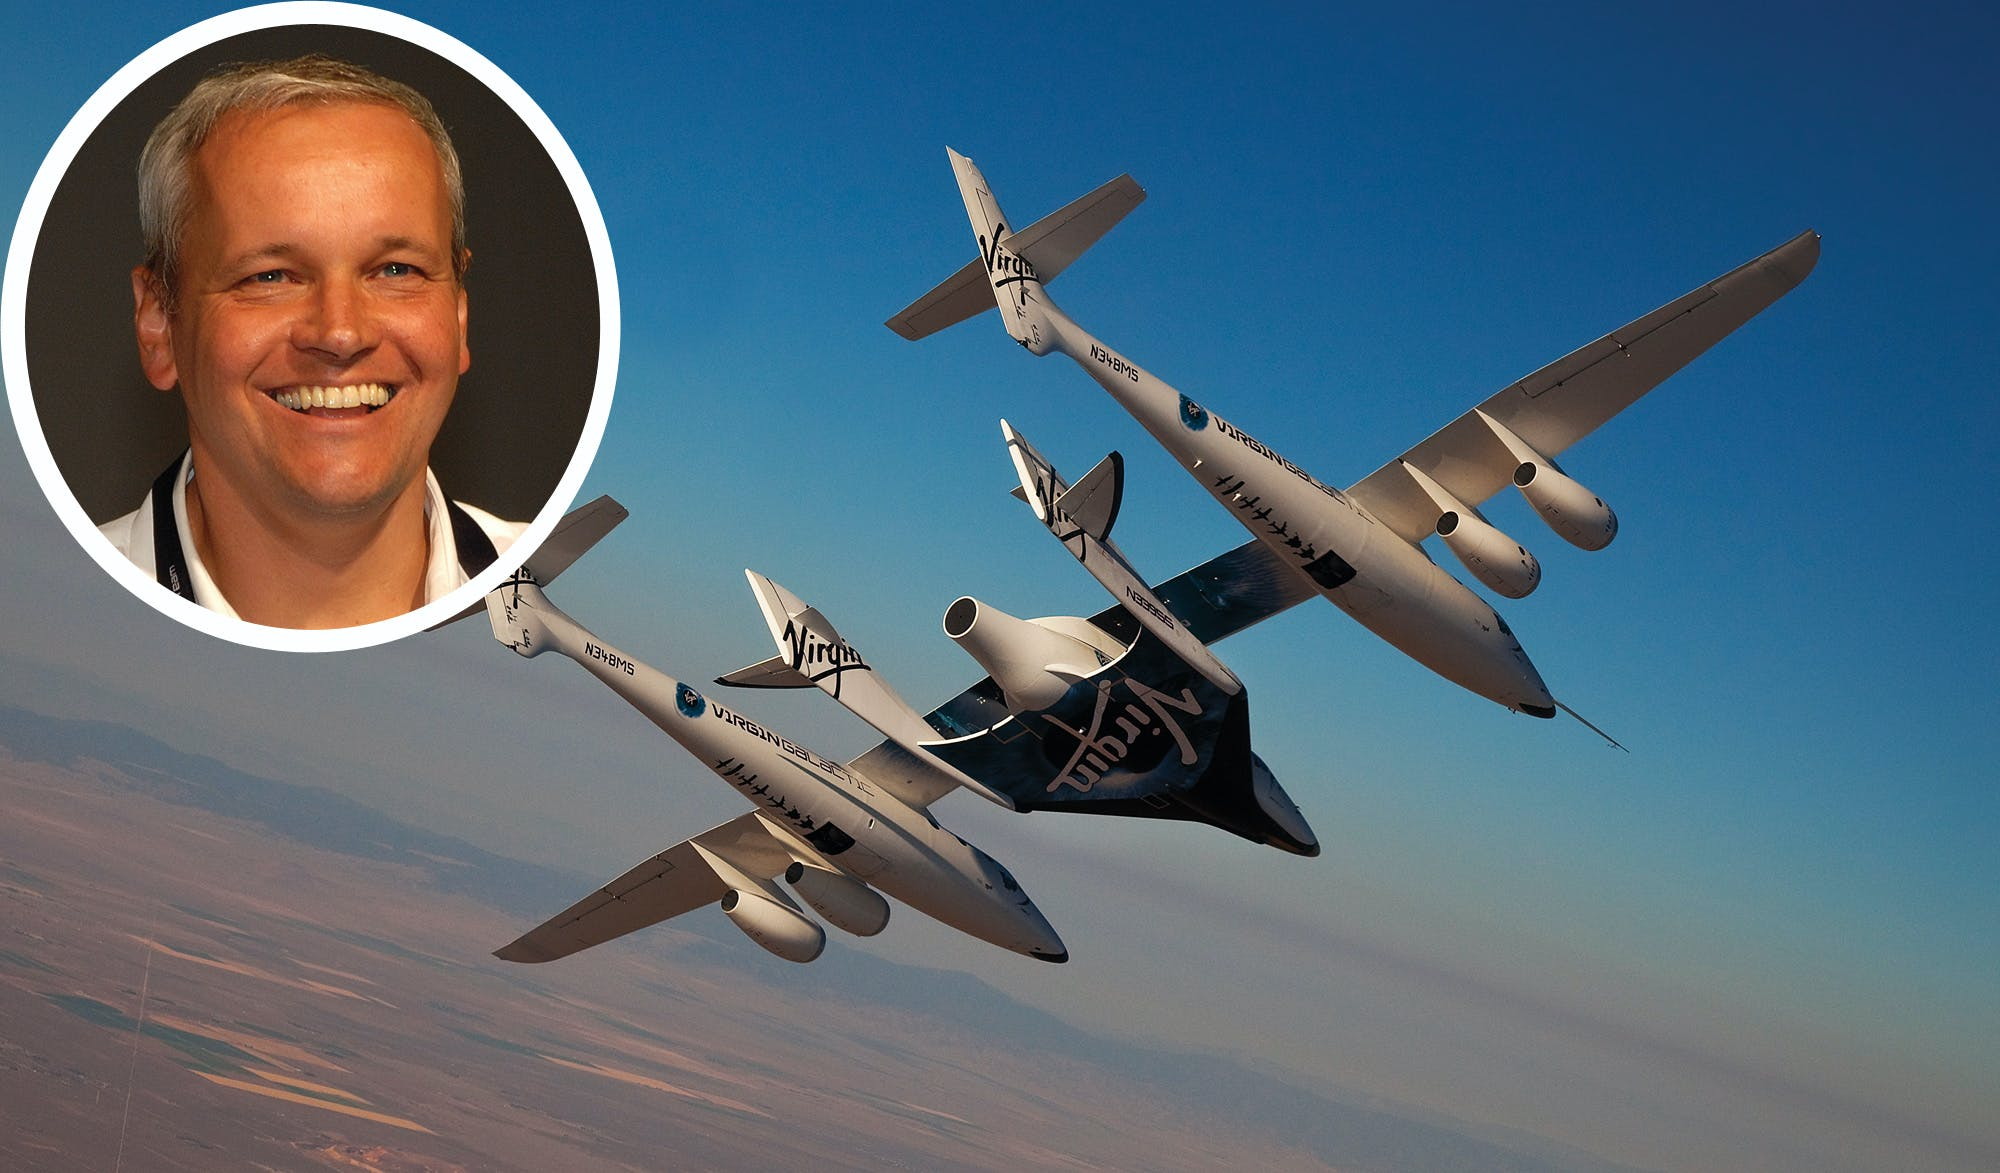 marketing report virgin galactic Virgin galactic, the world's first commercial spaceline, is democratizing access to space for the benefit of life on earth founded by sir richard branson and owned by the virgin group and aabar investments pjs, we are developing flights to space for private astronauts, research experiments, and satellites.